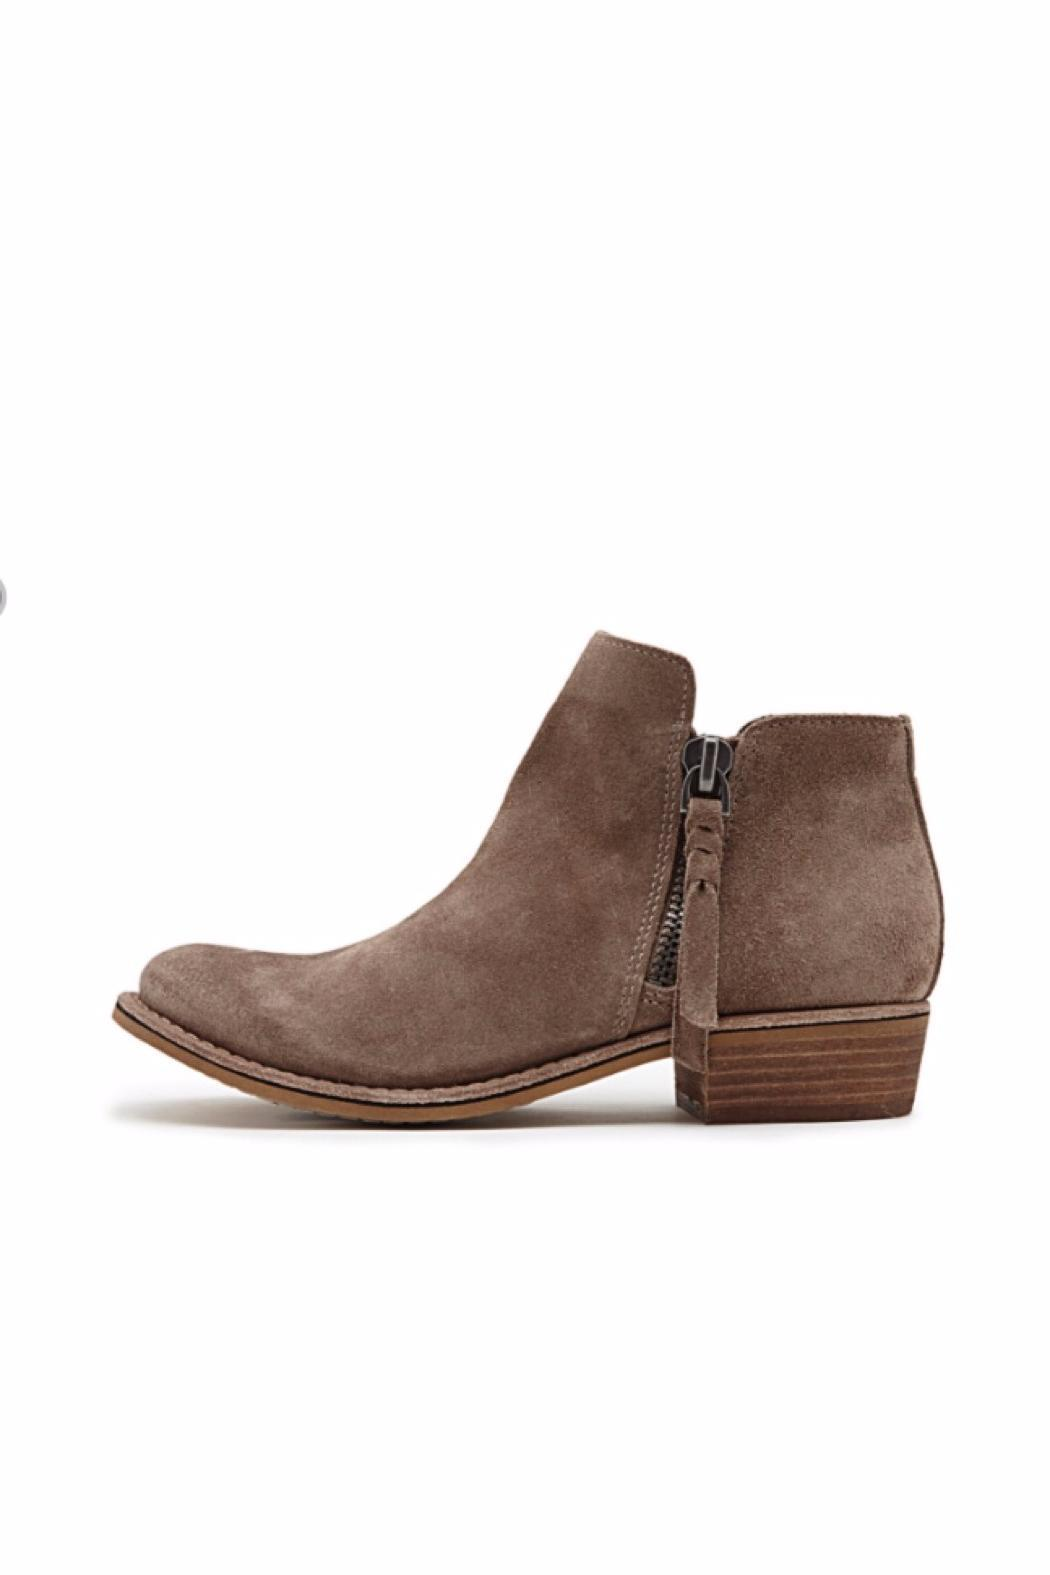 Dolce Vita Sutton Suede Booties - Main Image